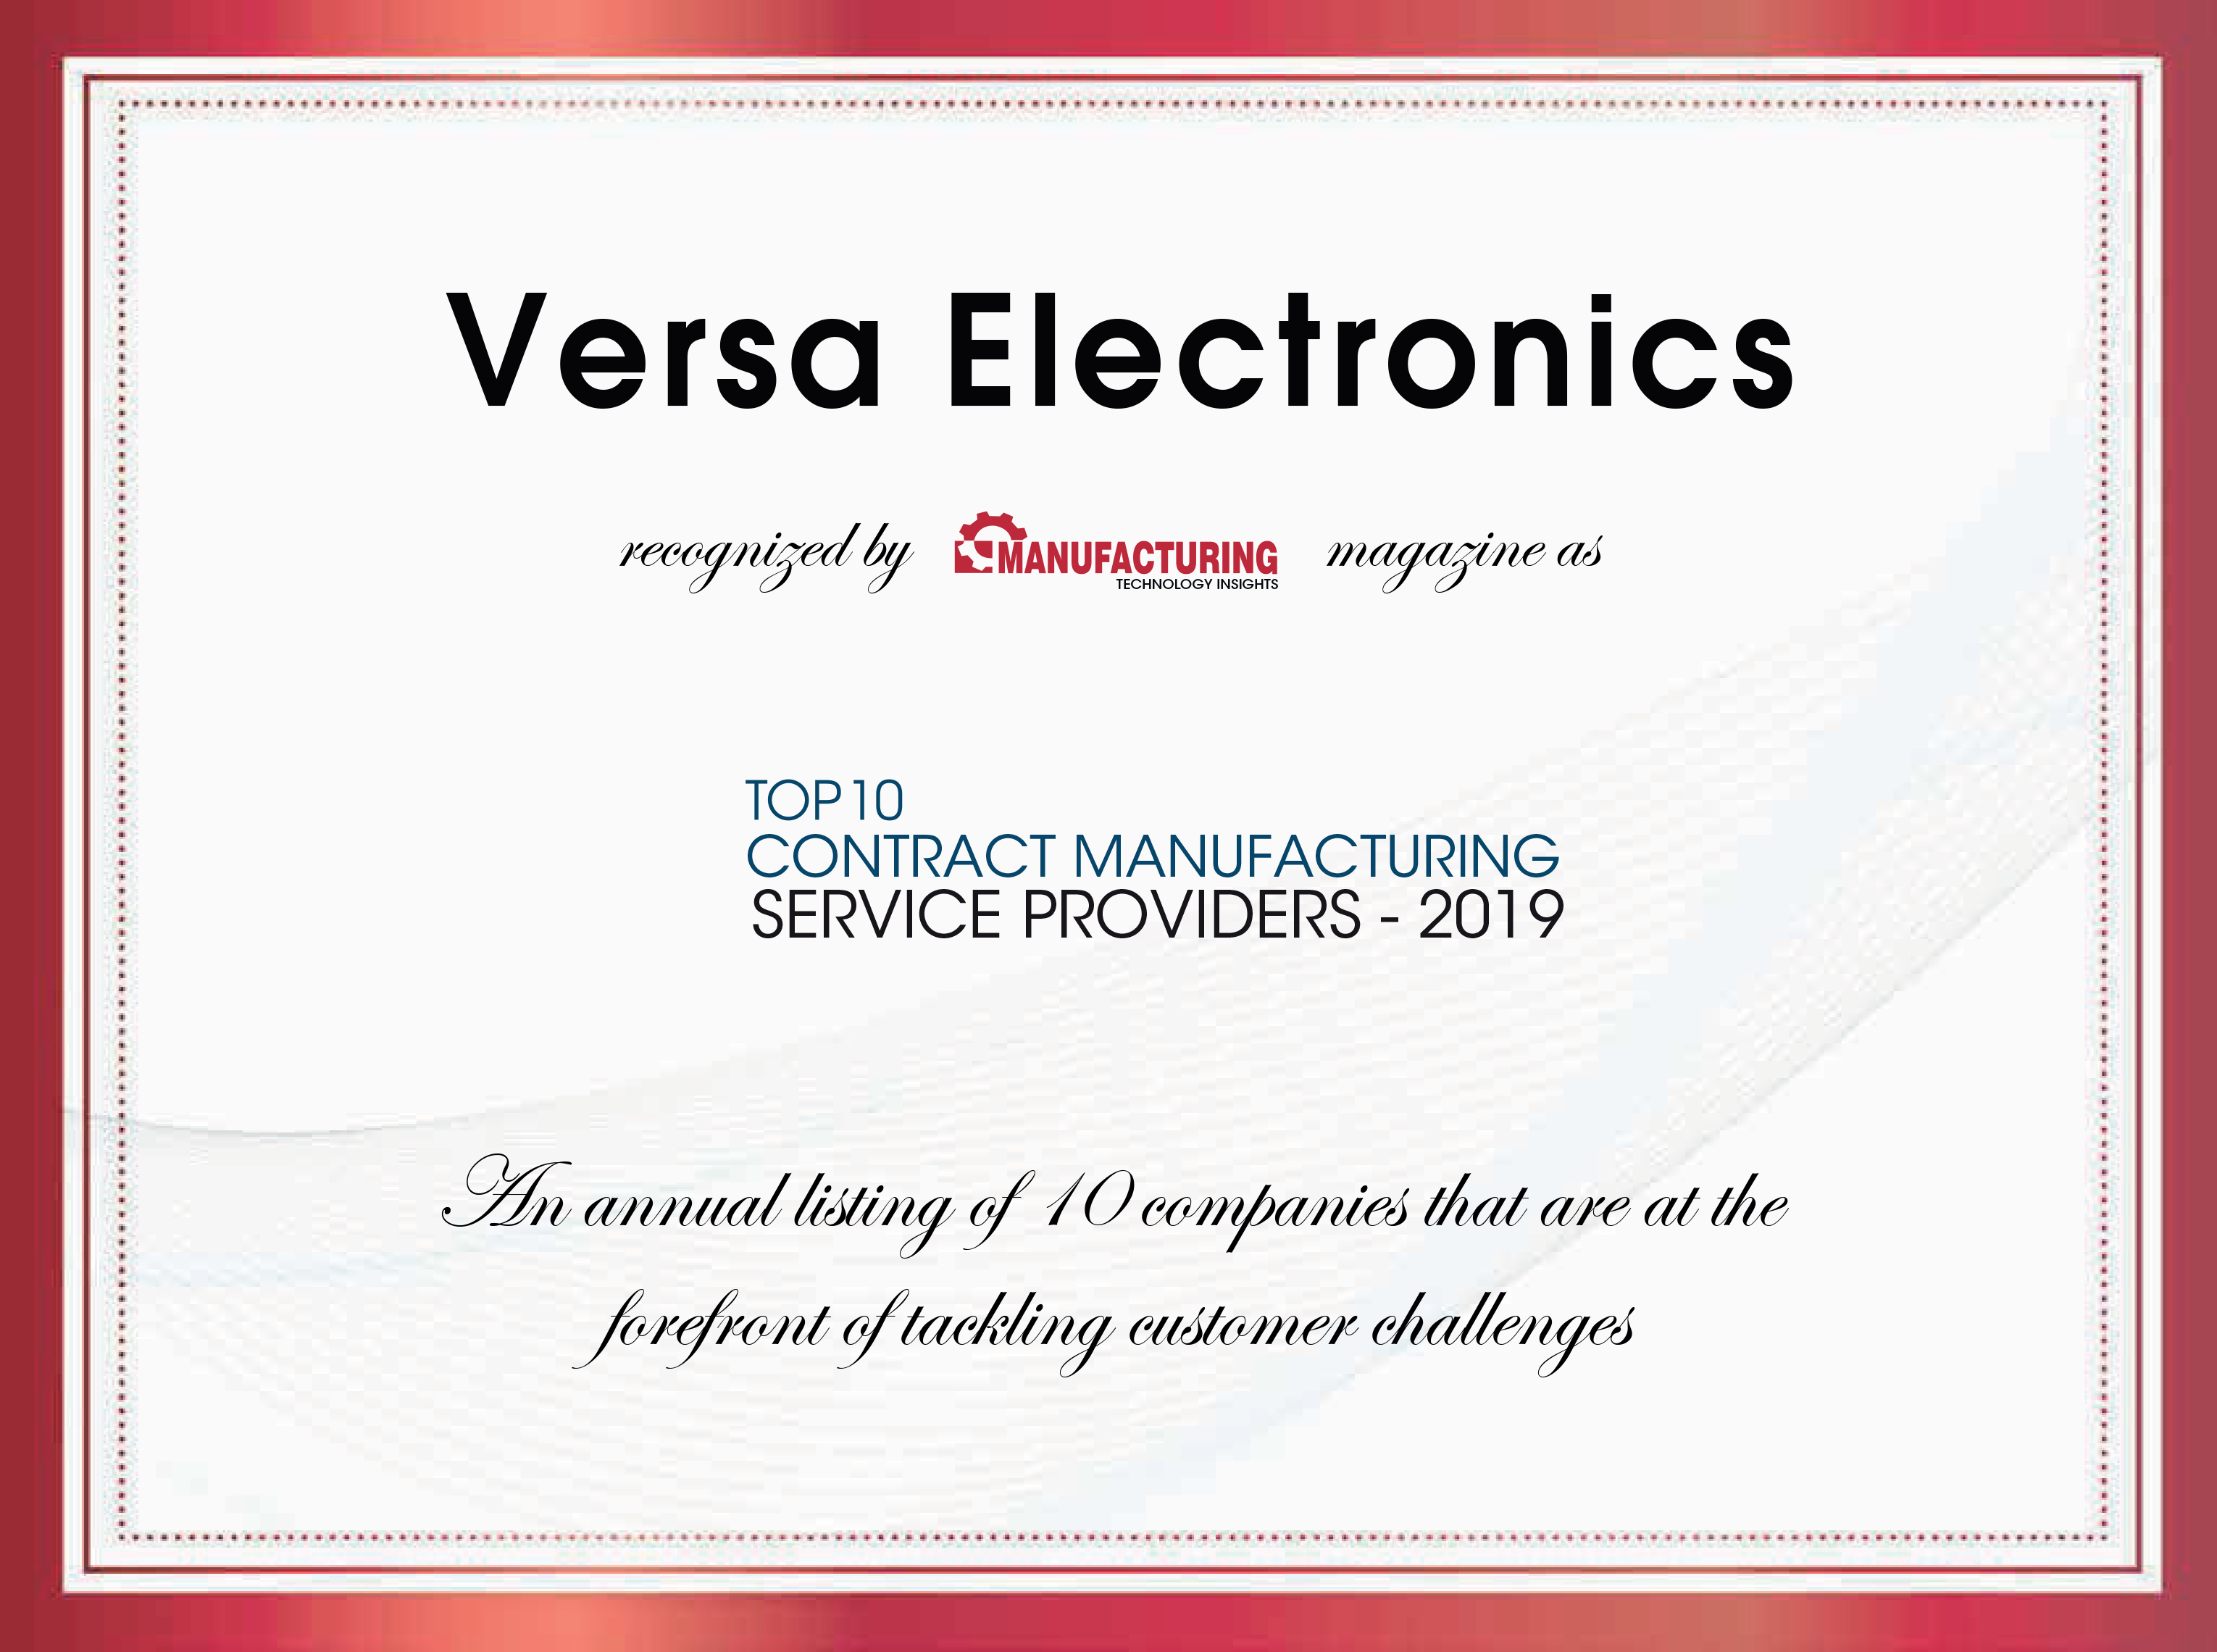 Electronic Contract Manufacturing Top 10